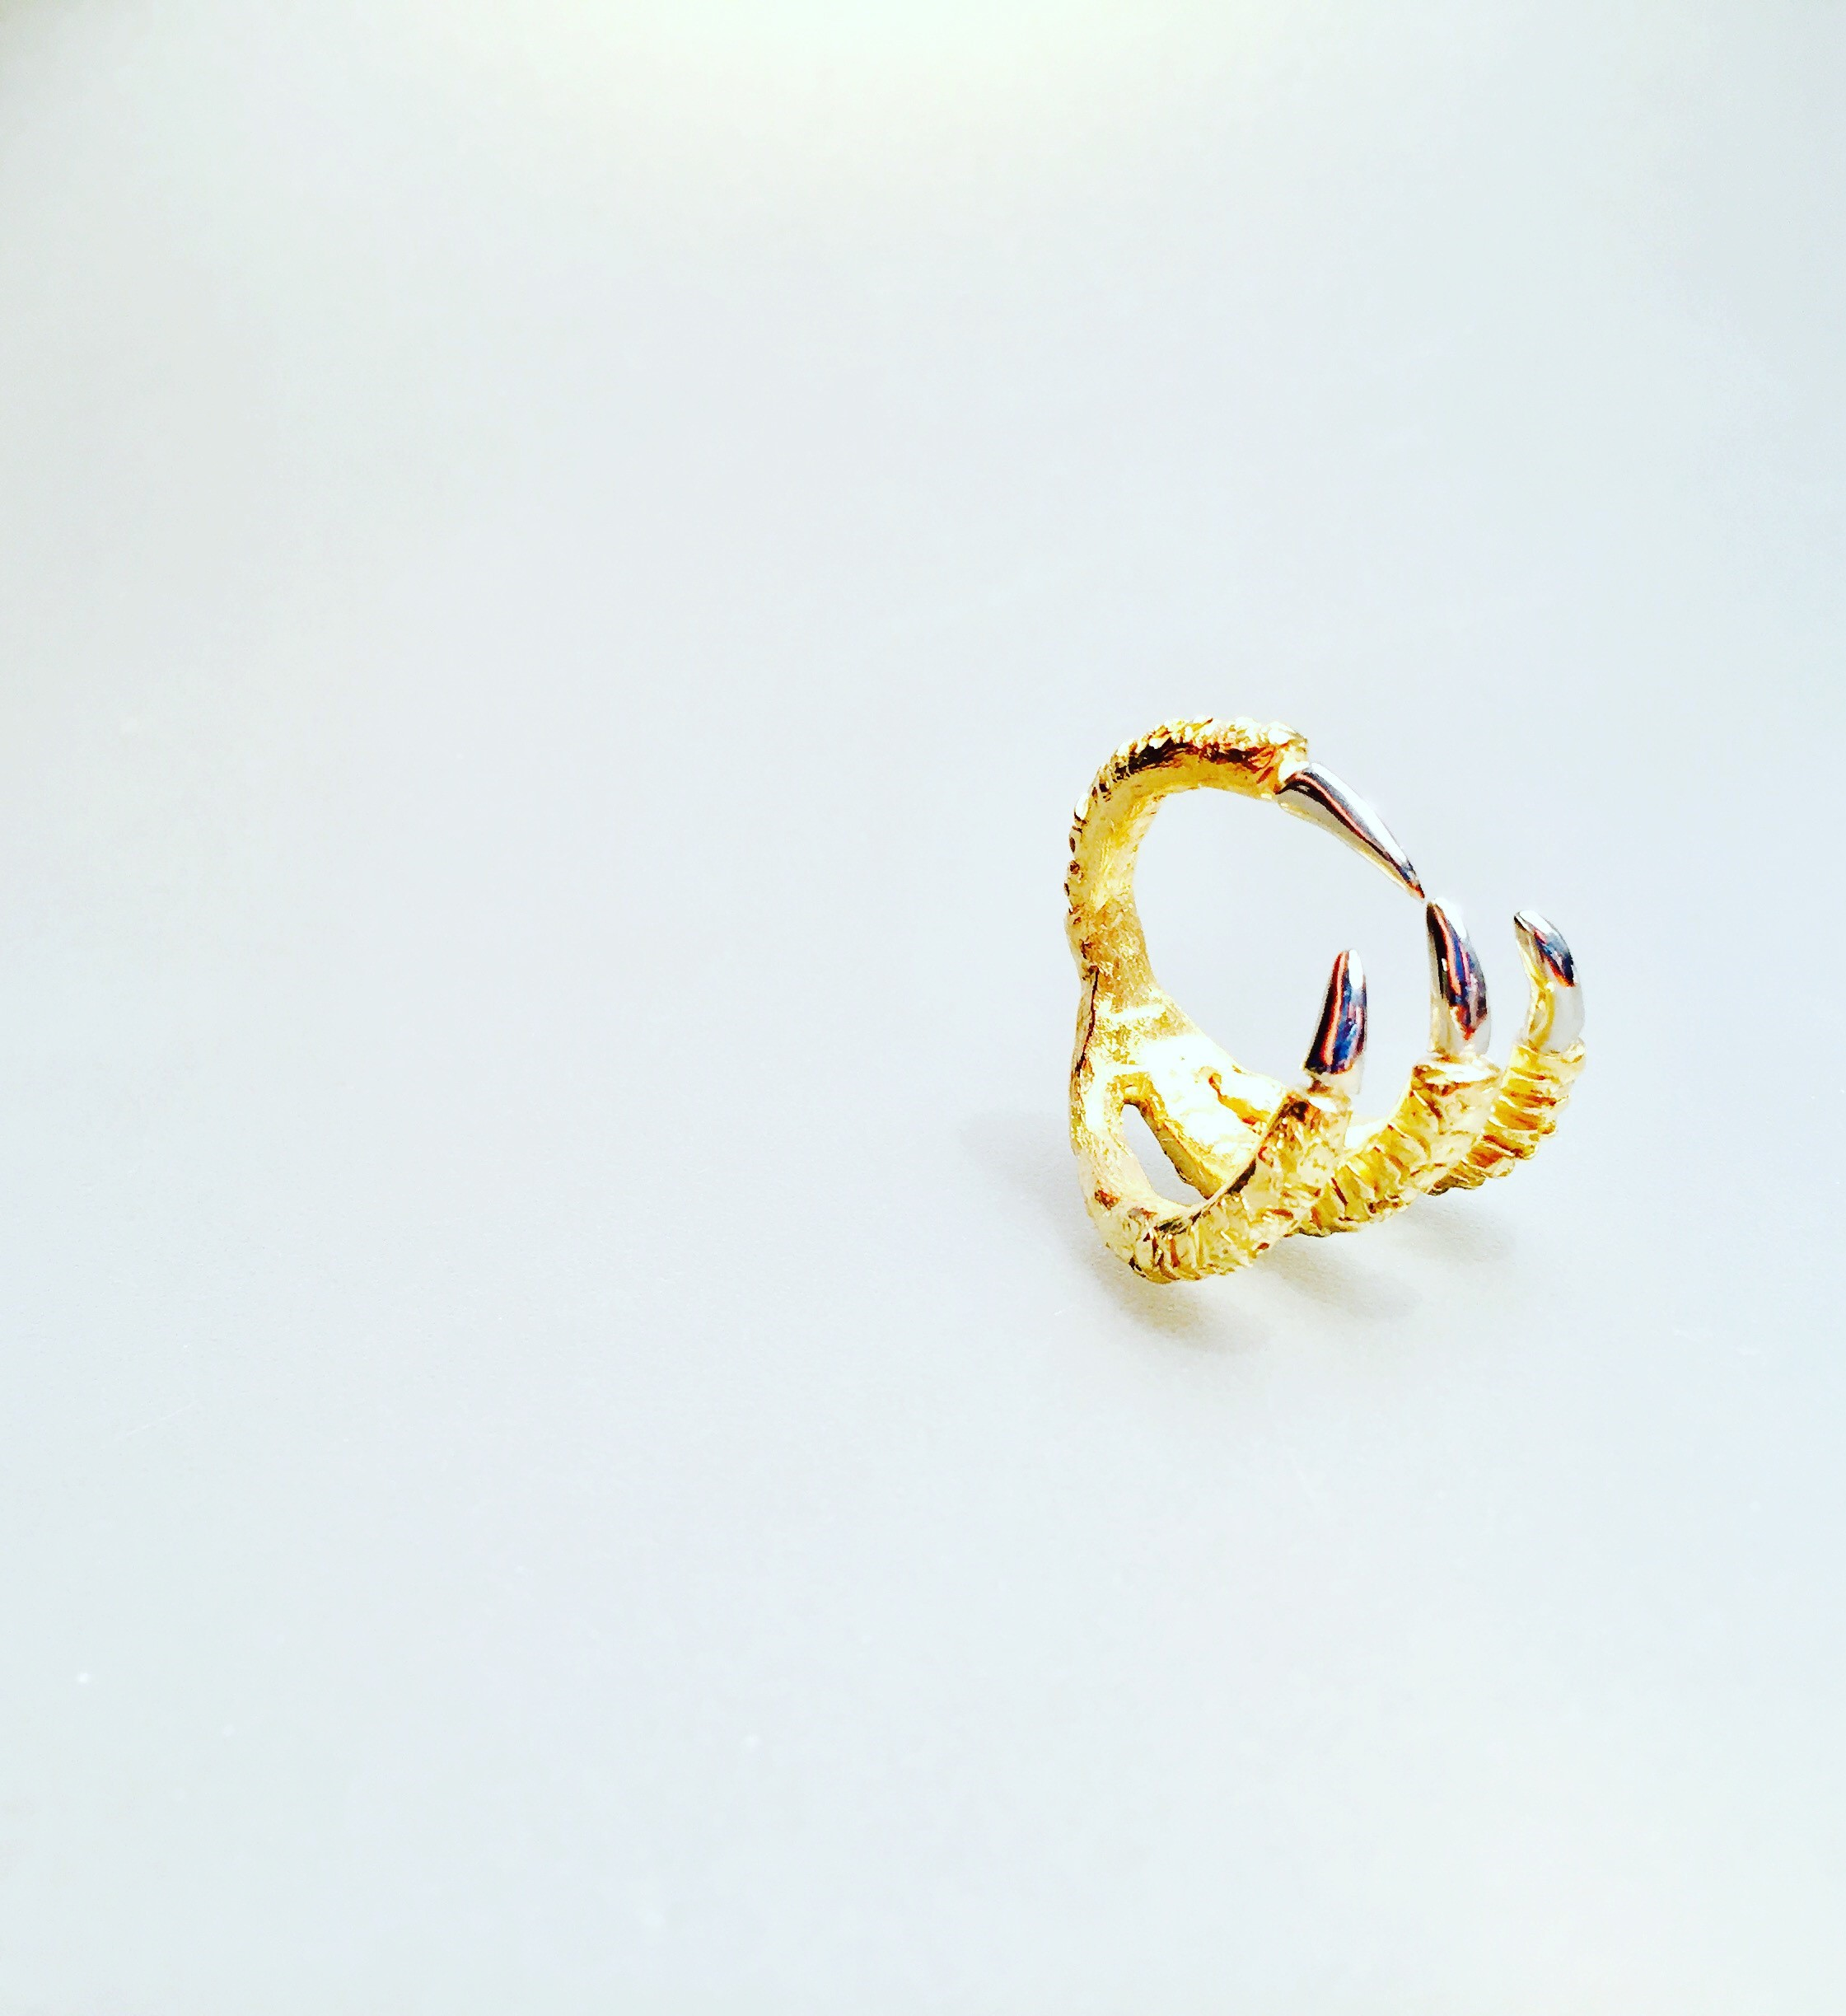 claw ring - 18 kt yellow gold and 19 kt white gold